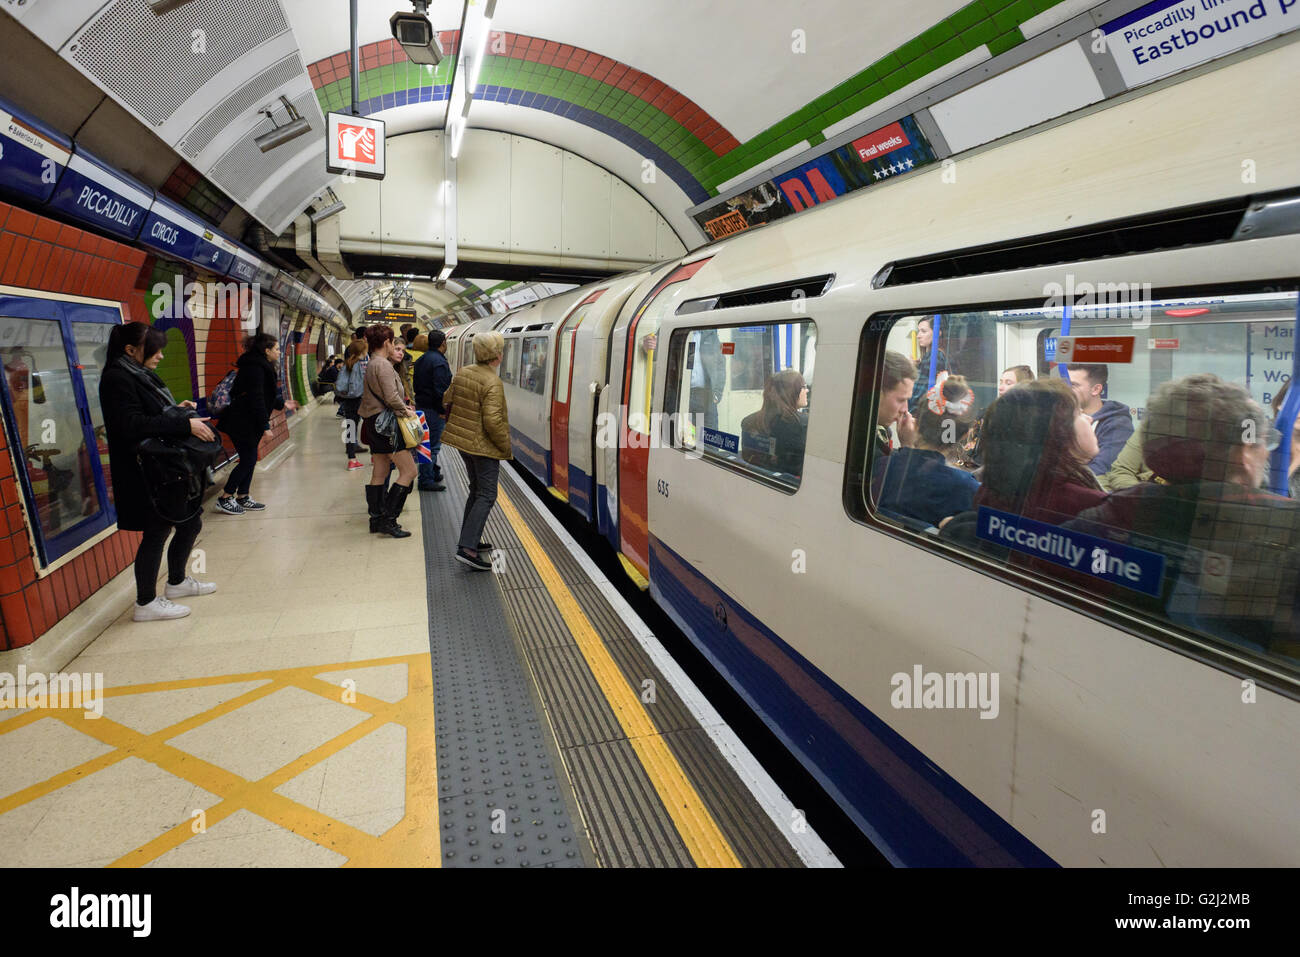 People preparing to board the London Underground Tube Train at Piccadilly Circus London - Stock Image